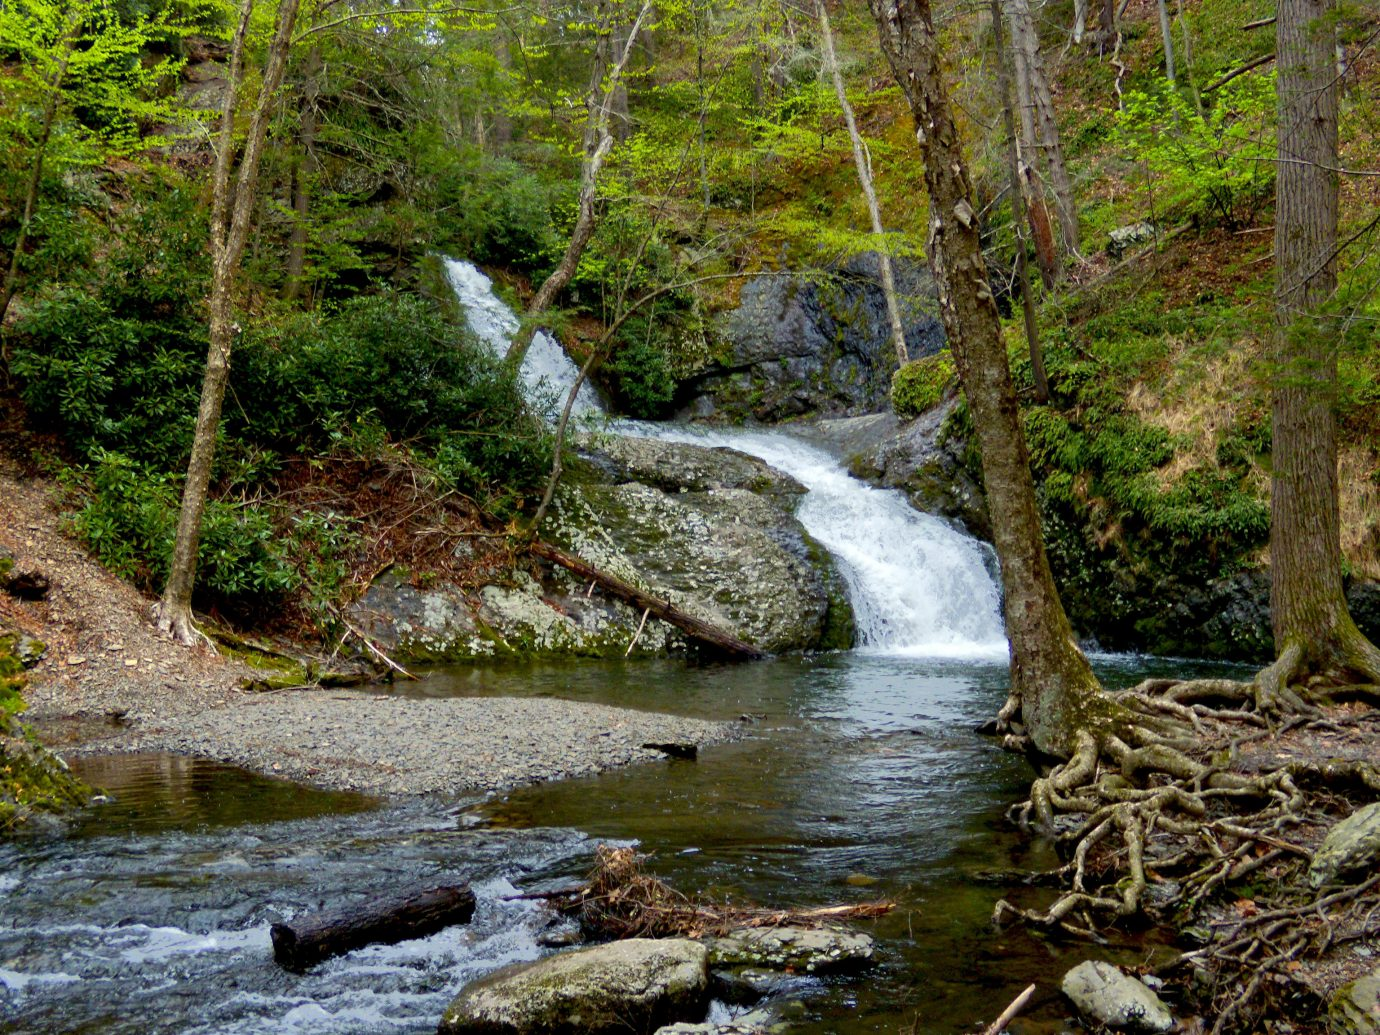 Trip Ideas Weekend Getaways tree outdoor habitat creek Nature Waterfall stream body of water River wilderness geographical feature water natural environment watercourse Forest water feature woodland rainforest rapid rock ravine autumn Jungle surrounded wooded